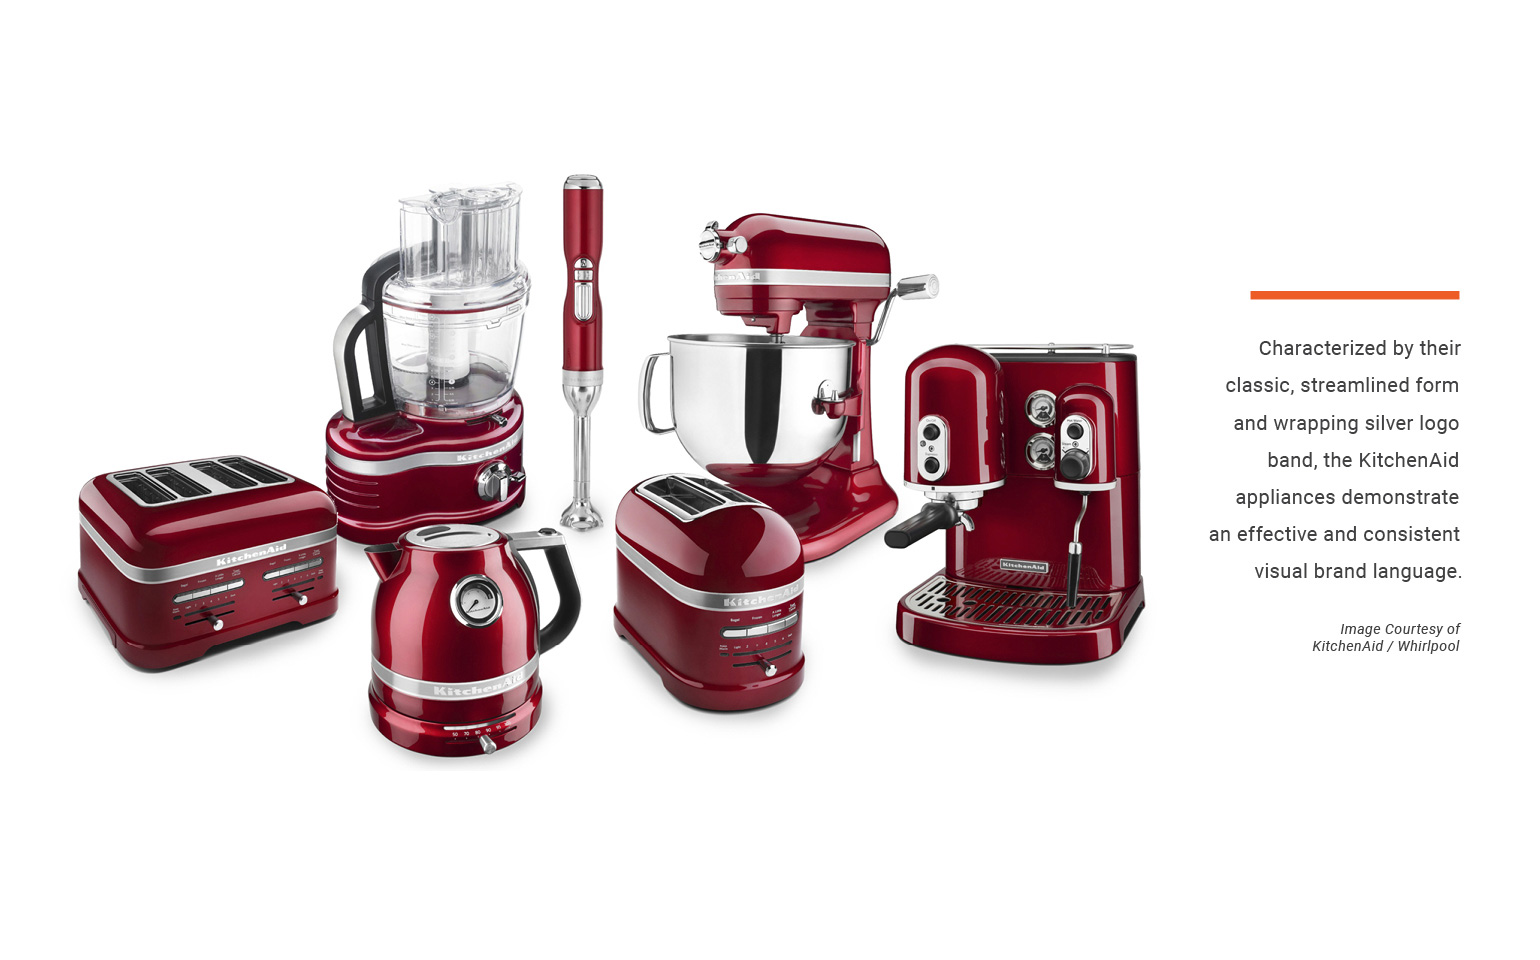 KitchenAid Family of Appliances